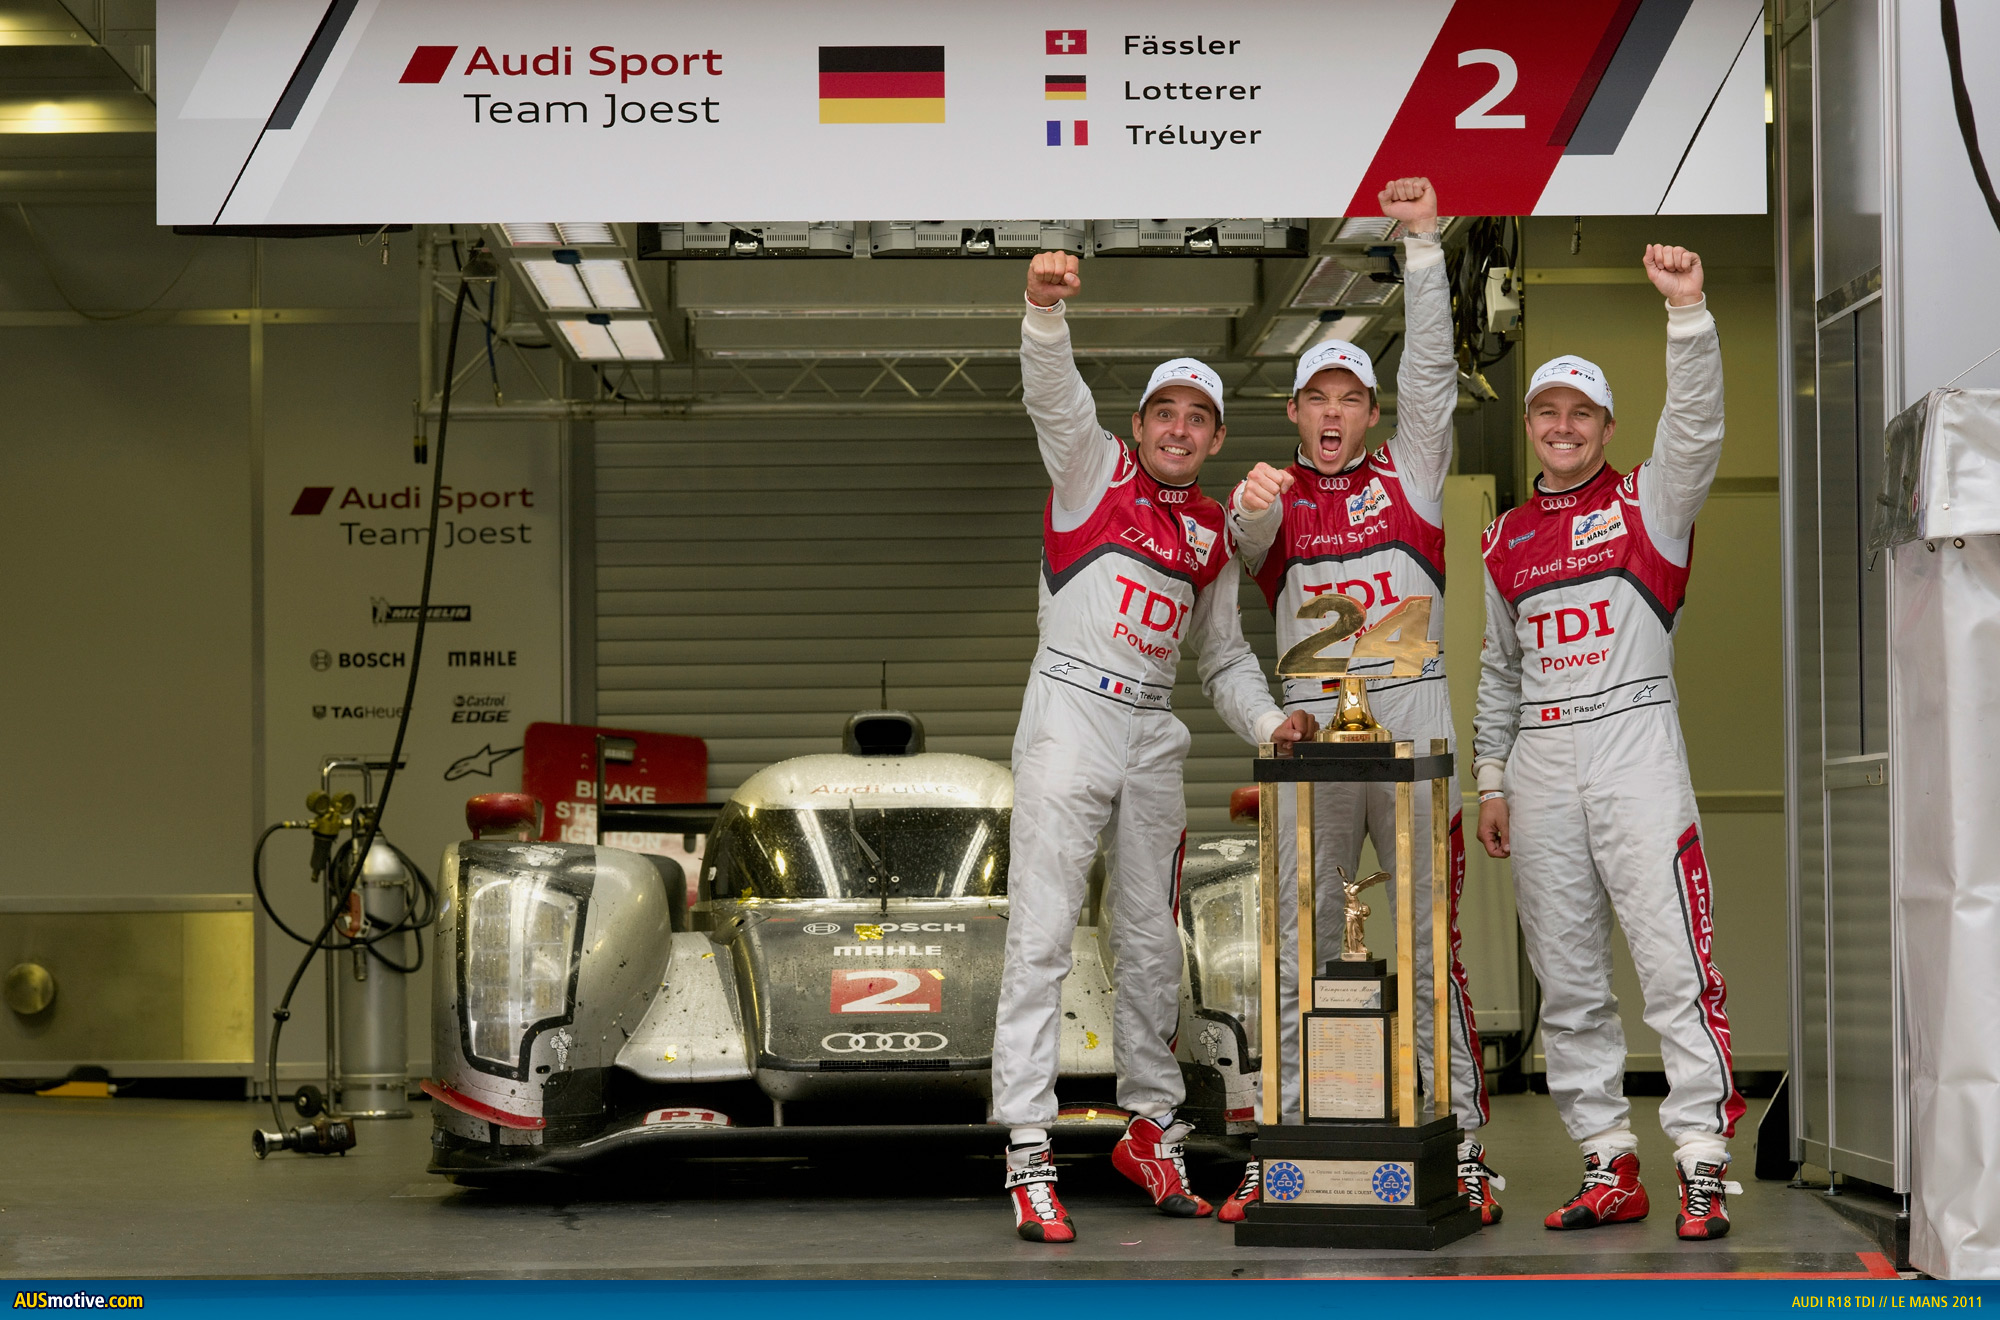 Audi Sport Team Joest quotes